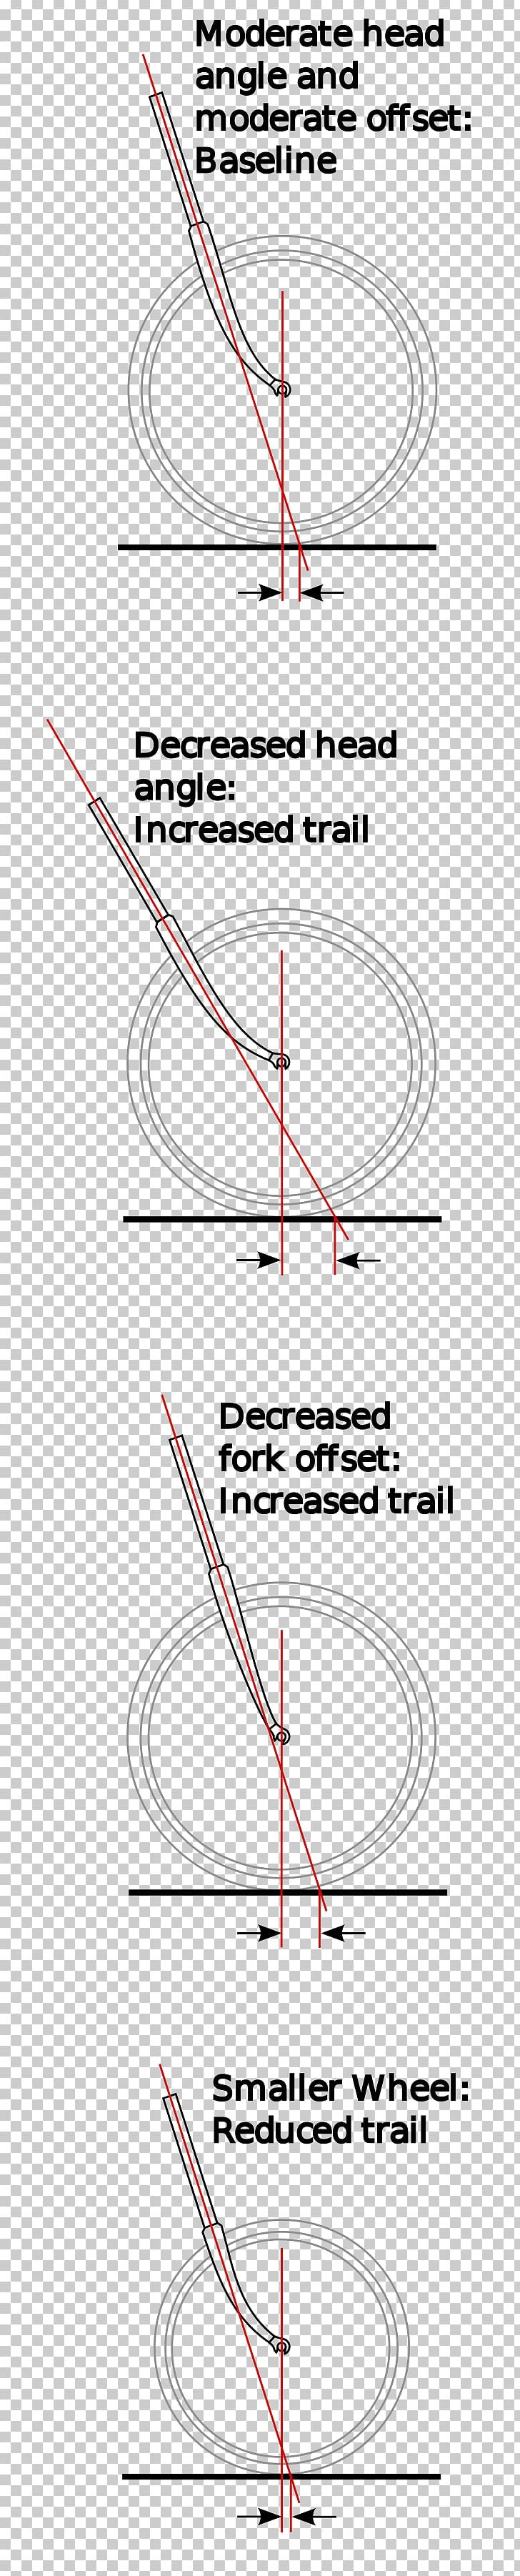 Angle Bicycle And Motorcycle Geometry Head Tube Bicycle Forks PNG, Clipart, Angle, Area, Bicycle, Bicycle And Motorcycle Geometry, Bicycle Forks Free PNG Download